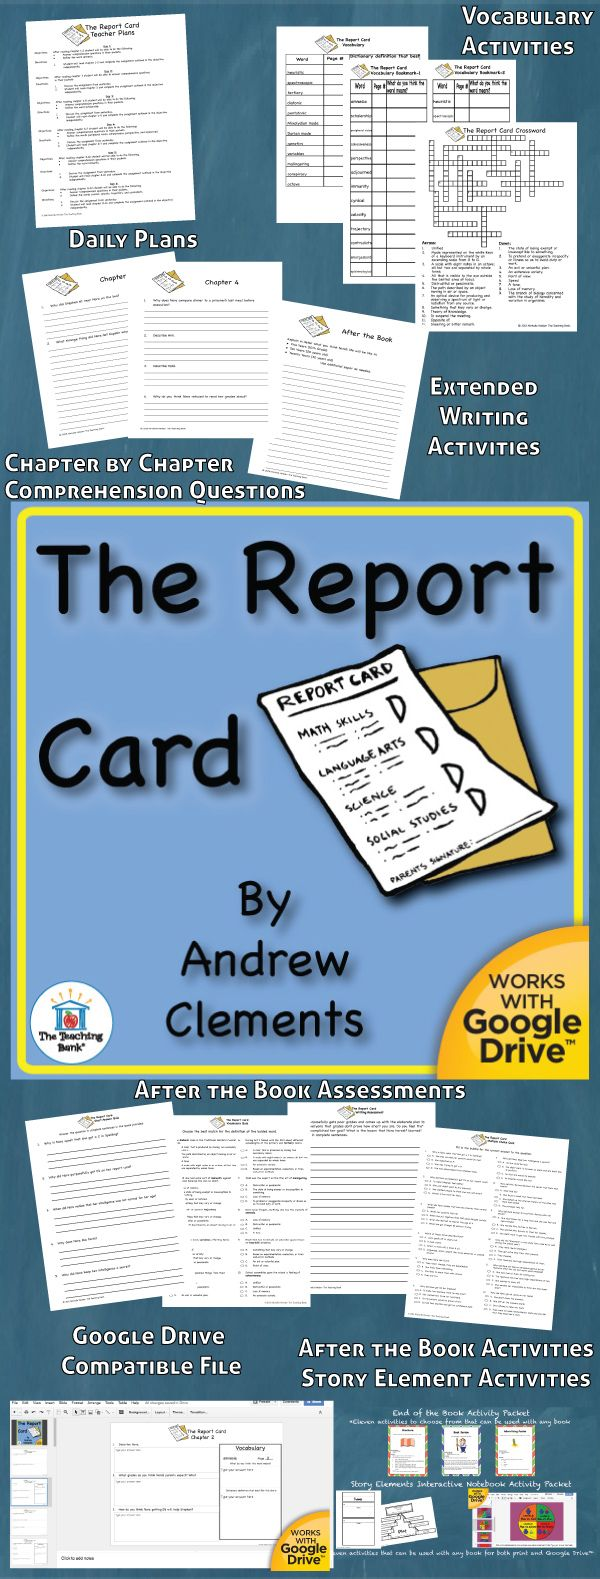 the report card by andrew clements book review The report card - ebook (9781442462205) by andrew clements andrew clements is the author of the i'm the author/artist and i want to review the report card.